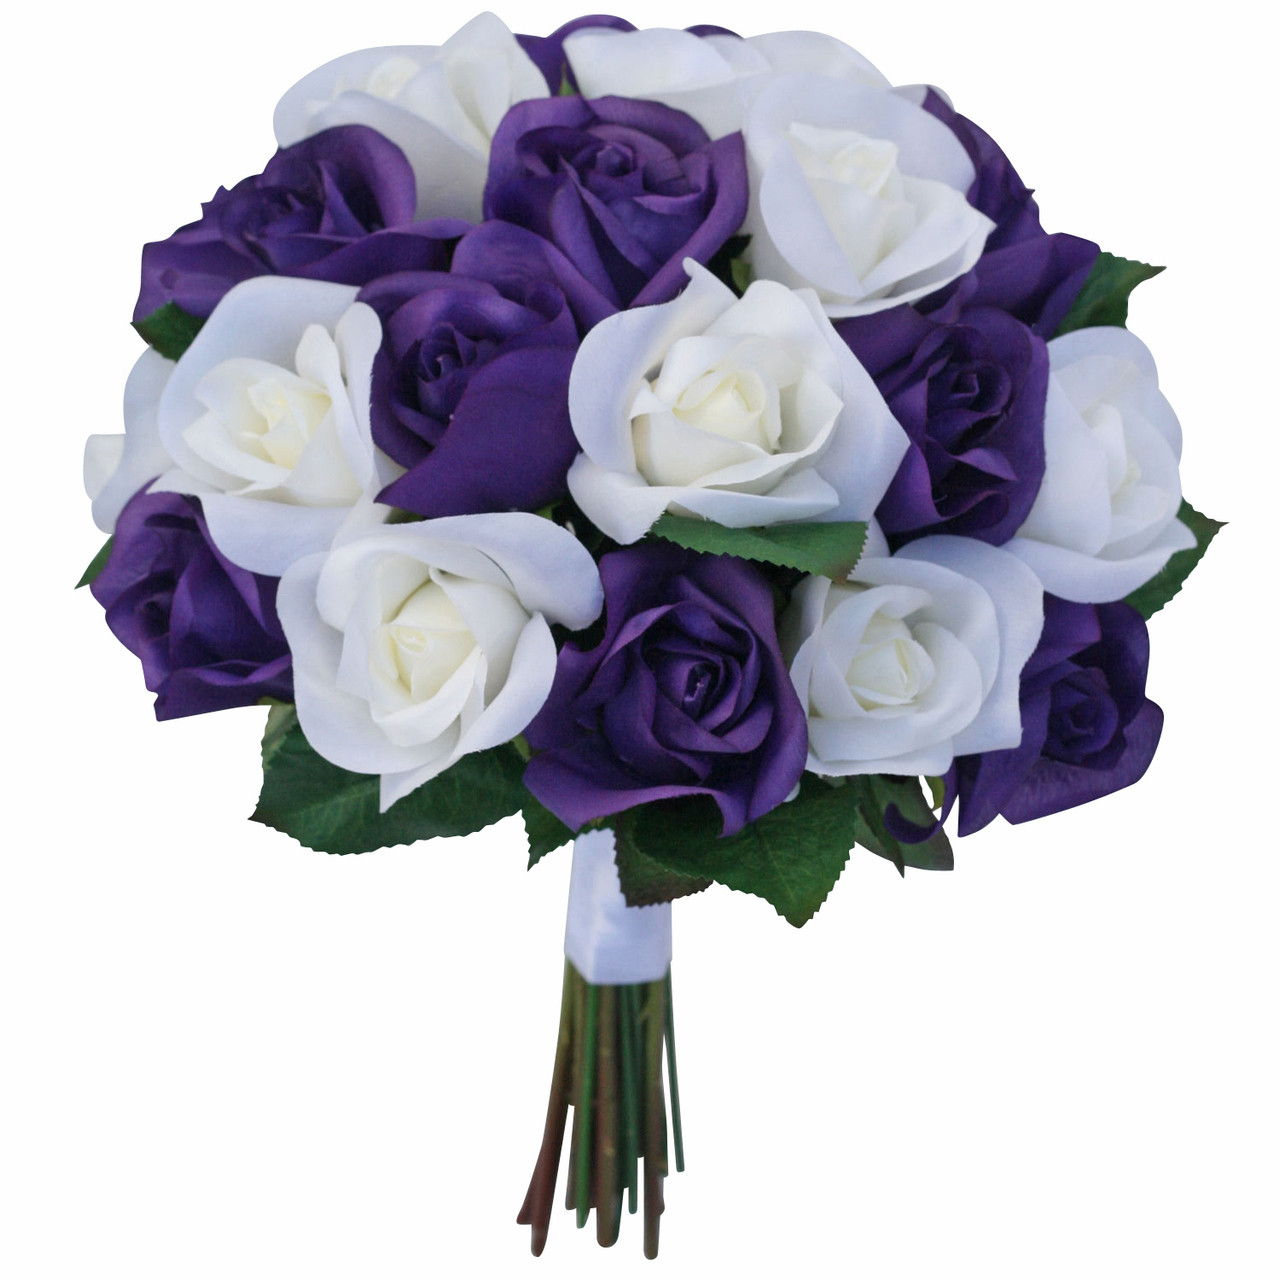 Flower Wedding Bouquet: Purple & Ivory Garden Rose Stem Fake Flower Bouquet